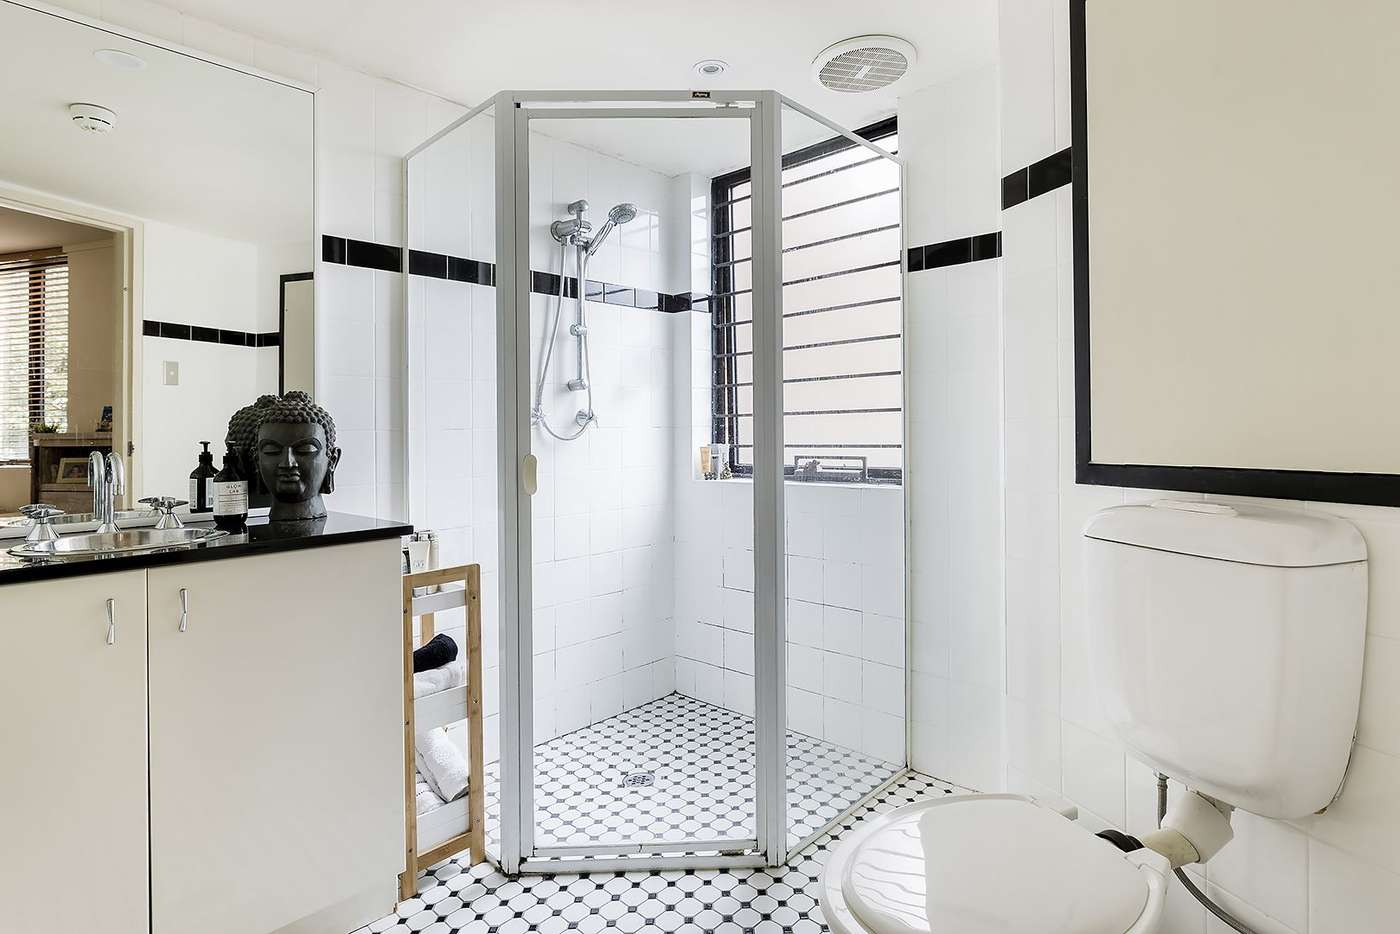 Fifth view of Homely apartment listing, 109/6-8 Ward Avenue, Potts Point NSW 2011